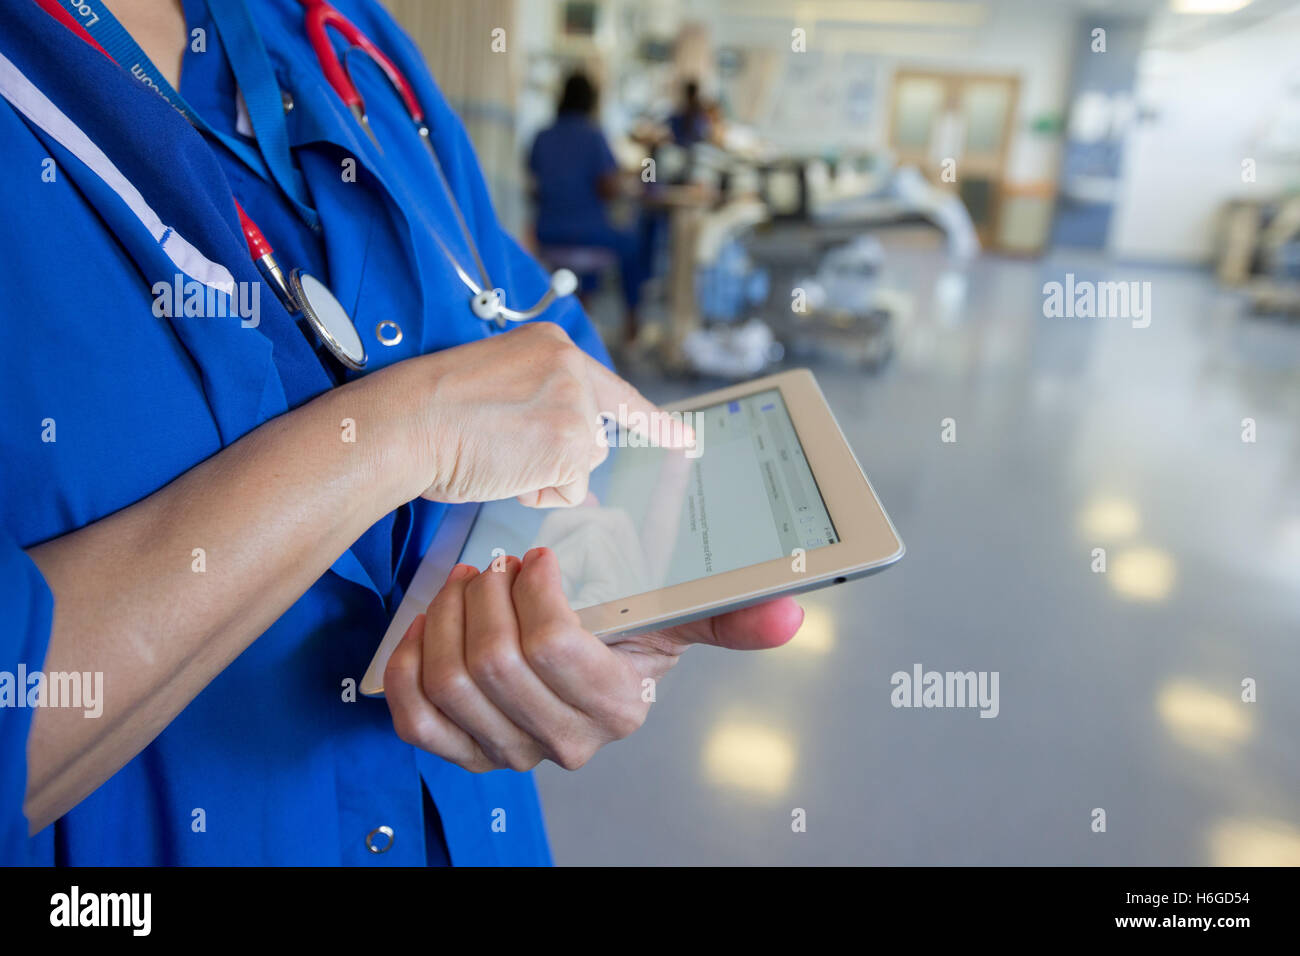 A doctor on a ward checks a patients' records on an Ipad - Stock Image